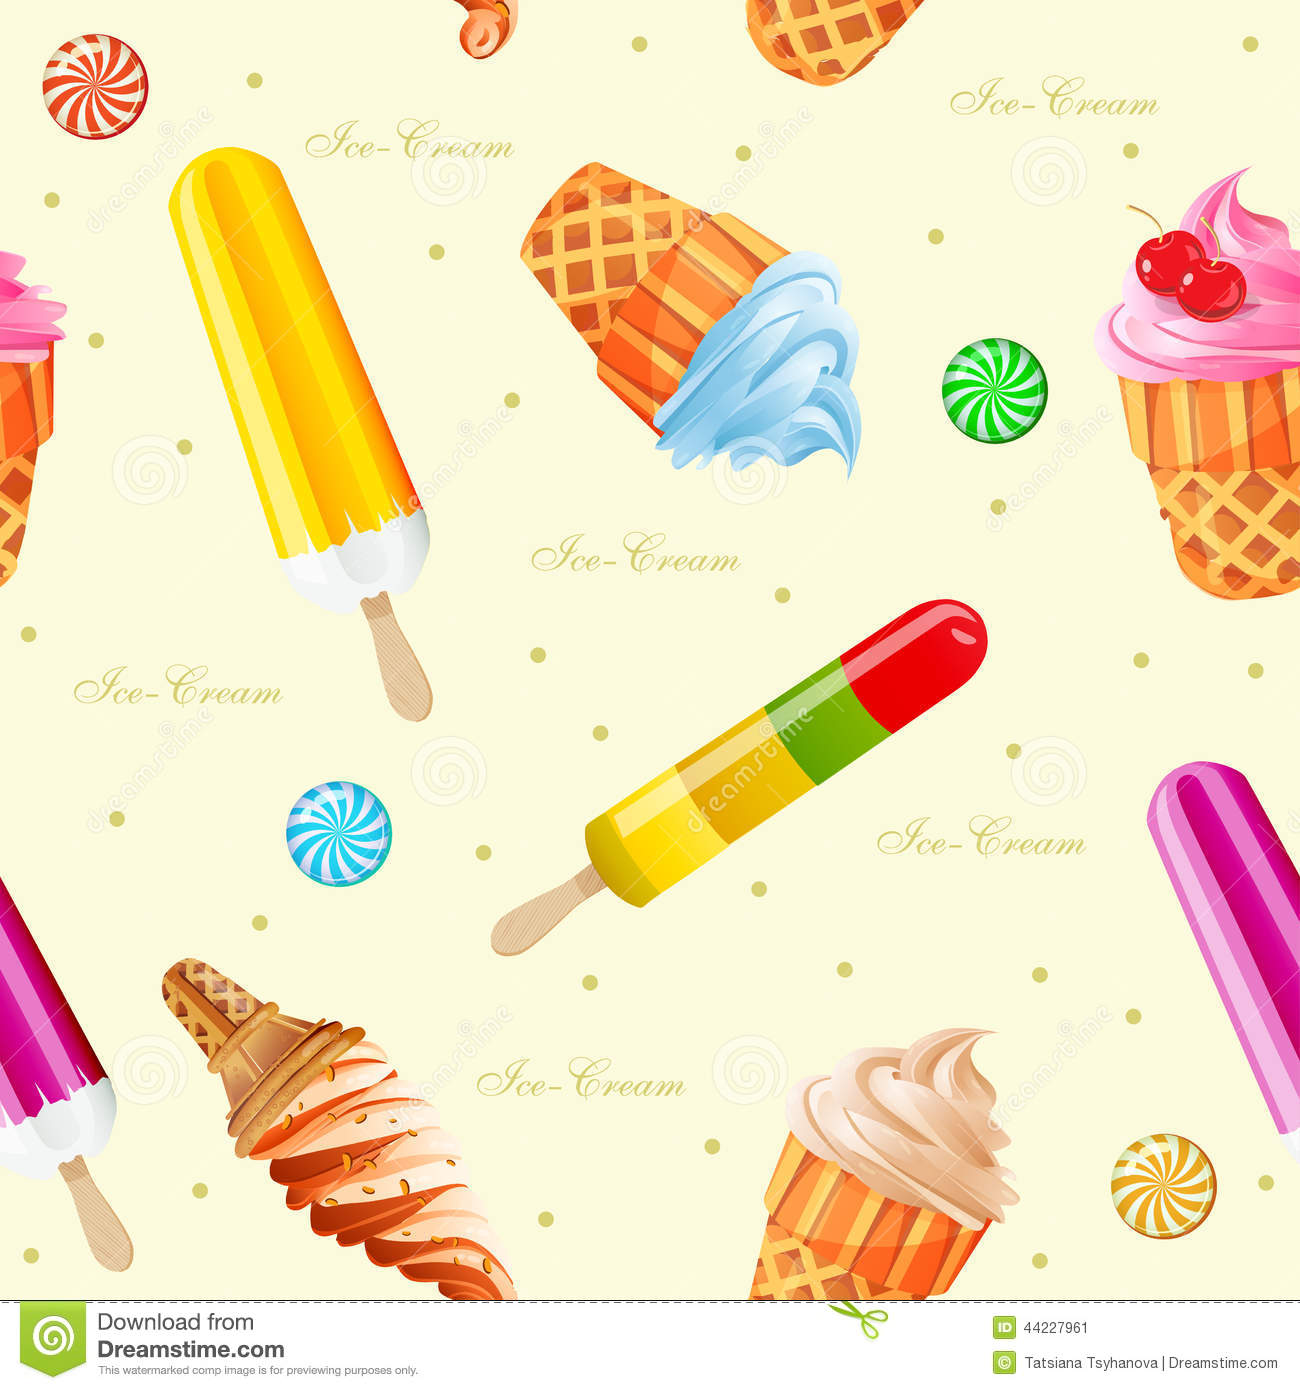 Seamless Ice Cream Wallpaper Royalty Free Stock Images: Ice-cream Seamless Pattern. Vector Illustration. Stock